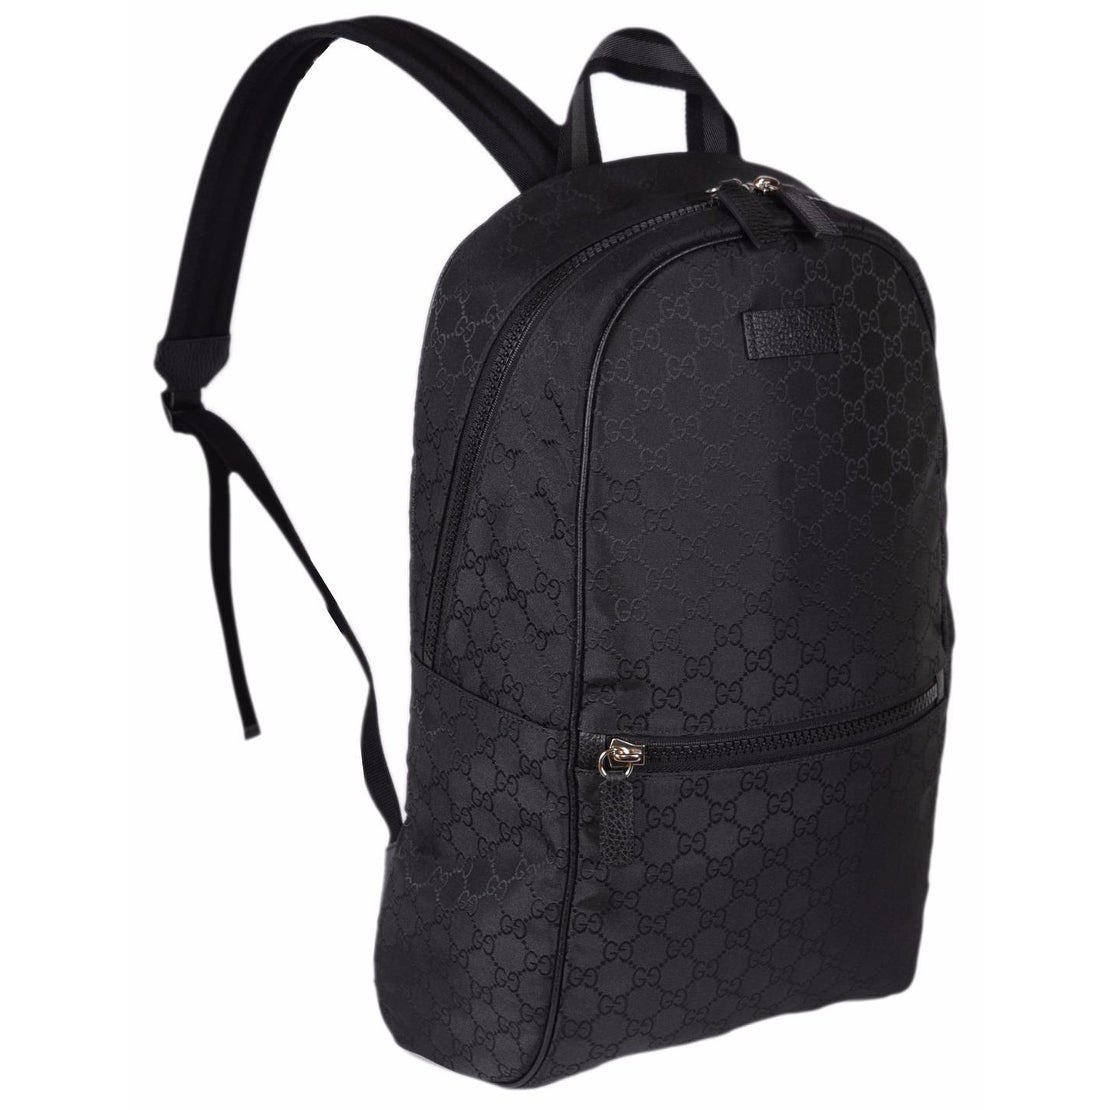 4c0bedf9f68 Gucci 449181 Black Nylon GG Guccissima Slim Backpack Rucksack Travel Bag